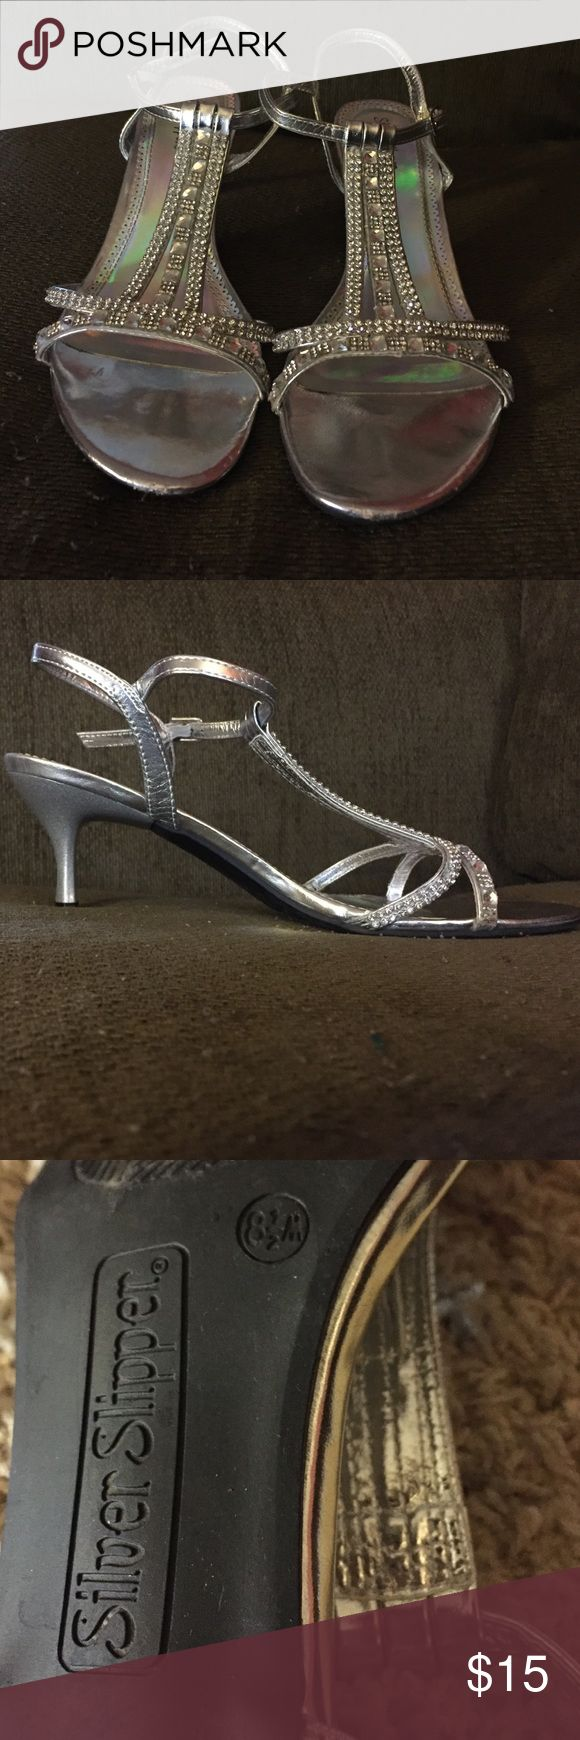 Silver Slipper 1-1/2 Inch Heels Only worn once for prom. Minimal damage on both shoes on the front toes (as pictured). Absolutely loved them! I still have and will include the box. Size 8-1/2, medium width. Shoes Heels